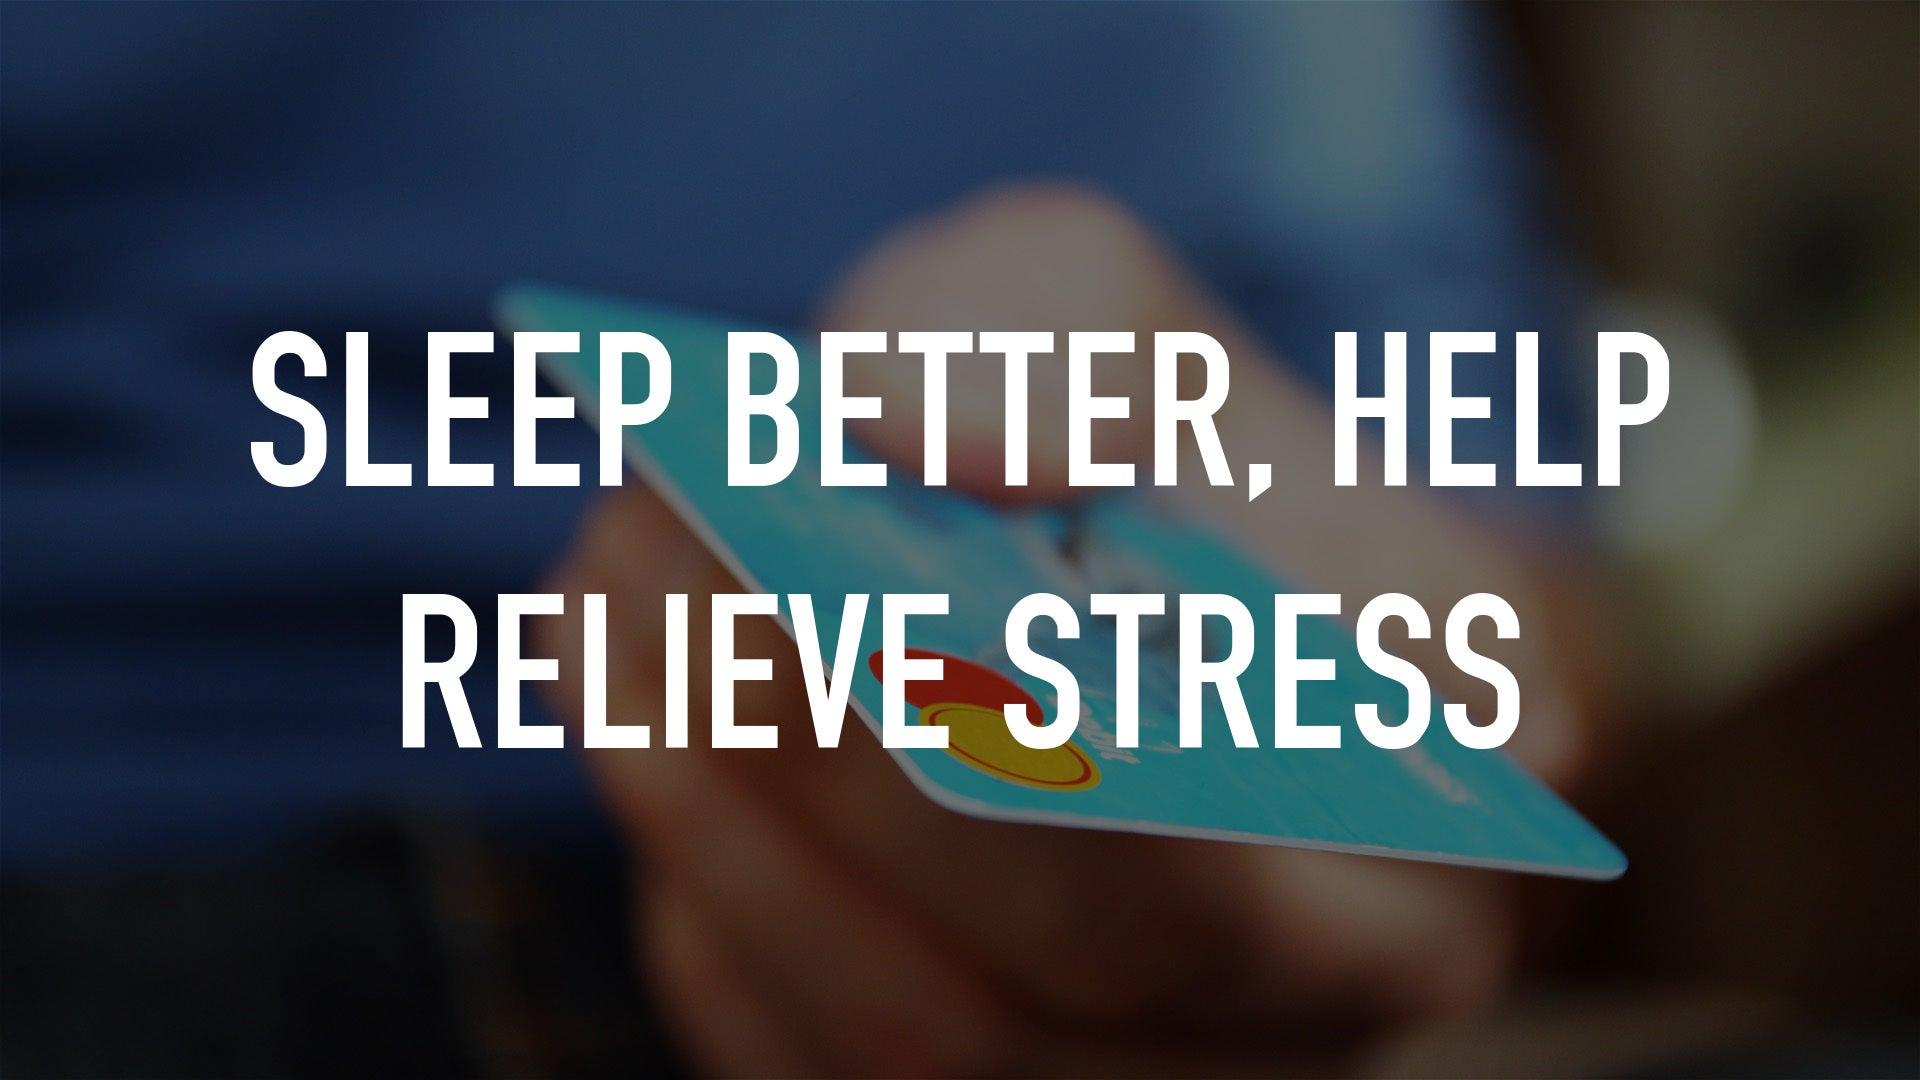 Sleep Better, Help Relieve Stress